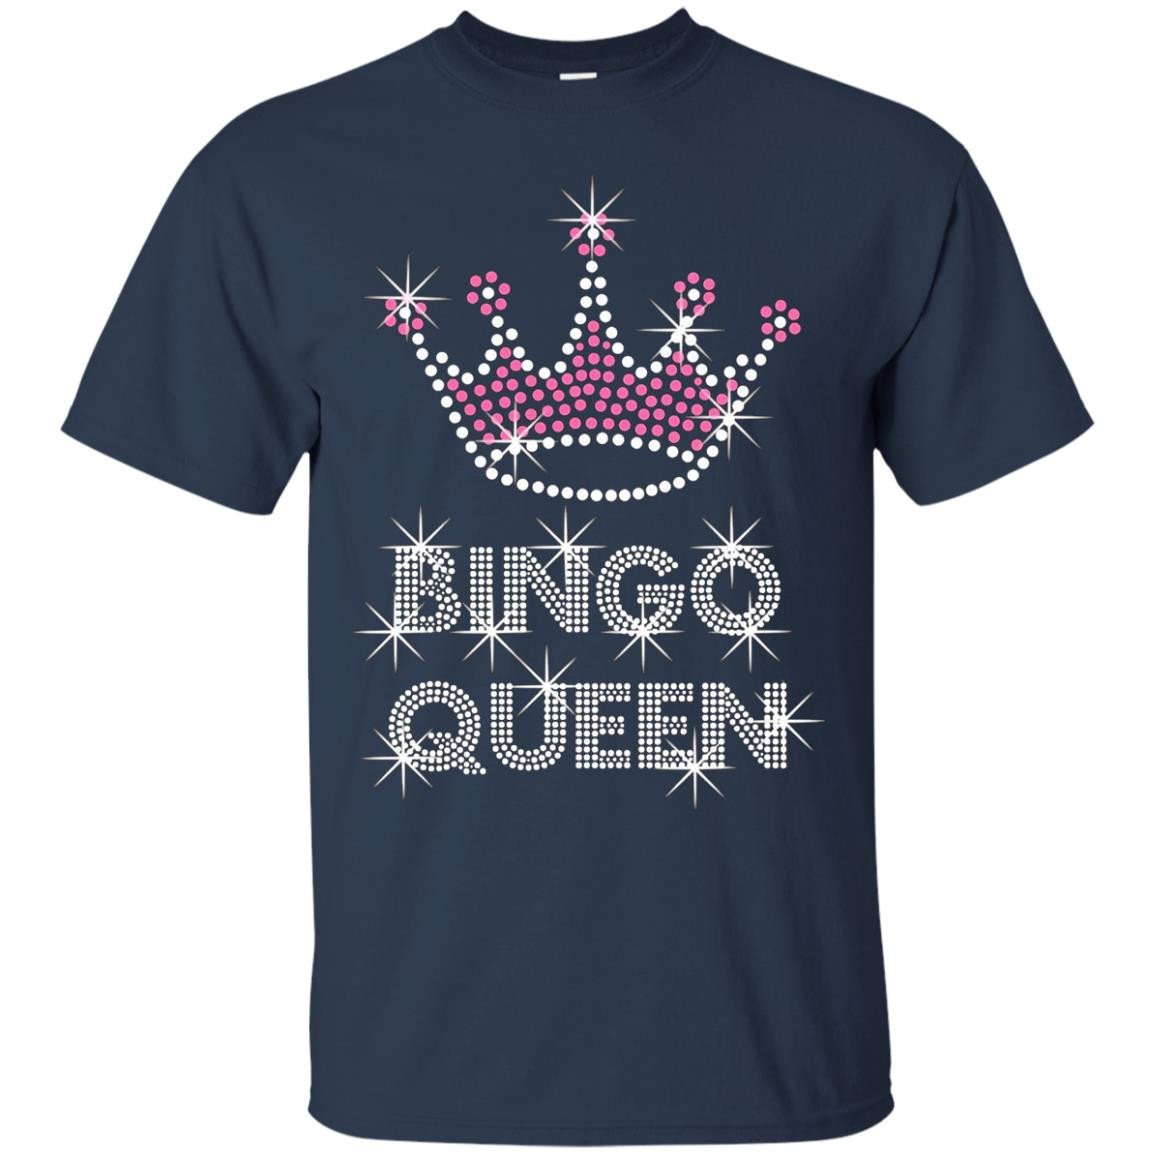 Bingo T-shirts bingo queen shirt top - T-Shirt